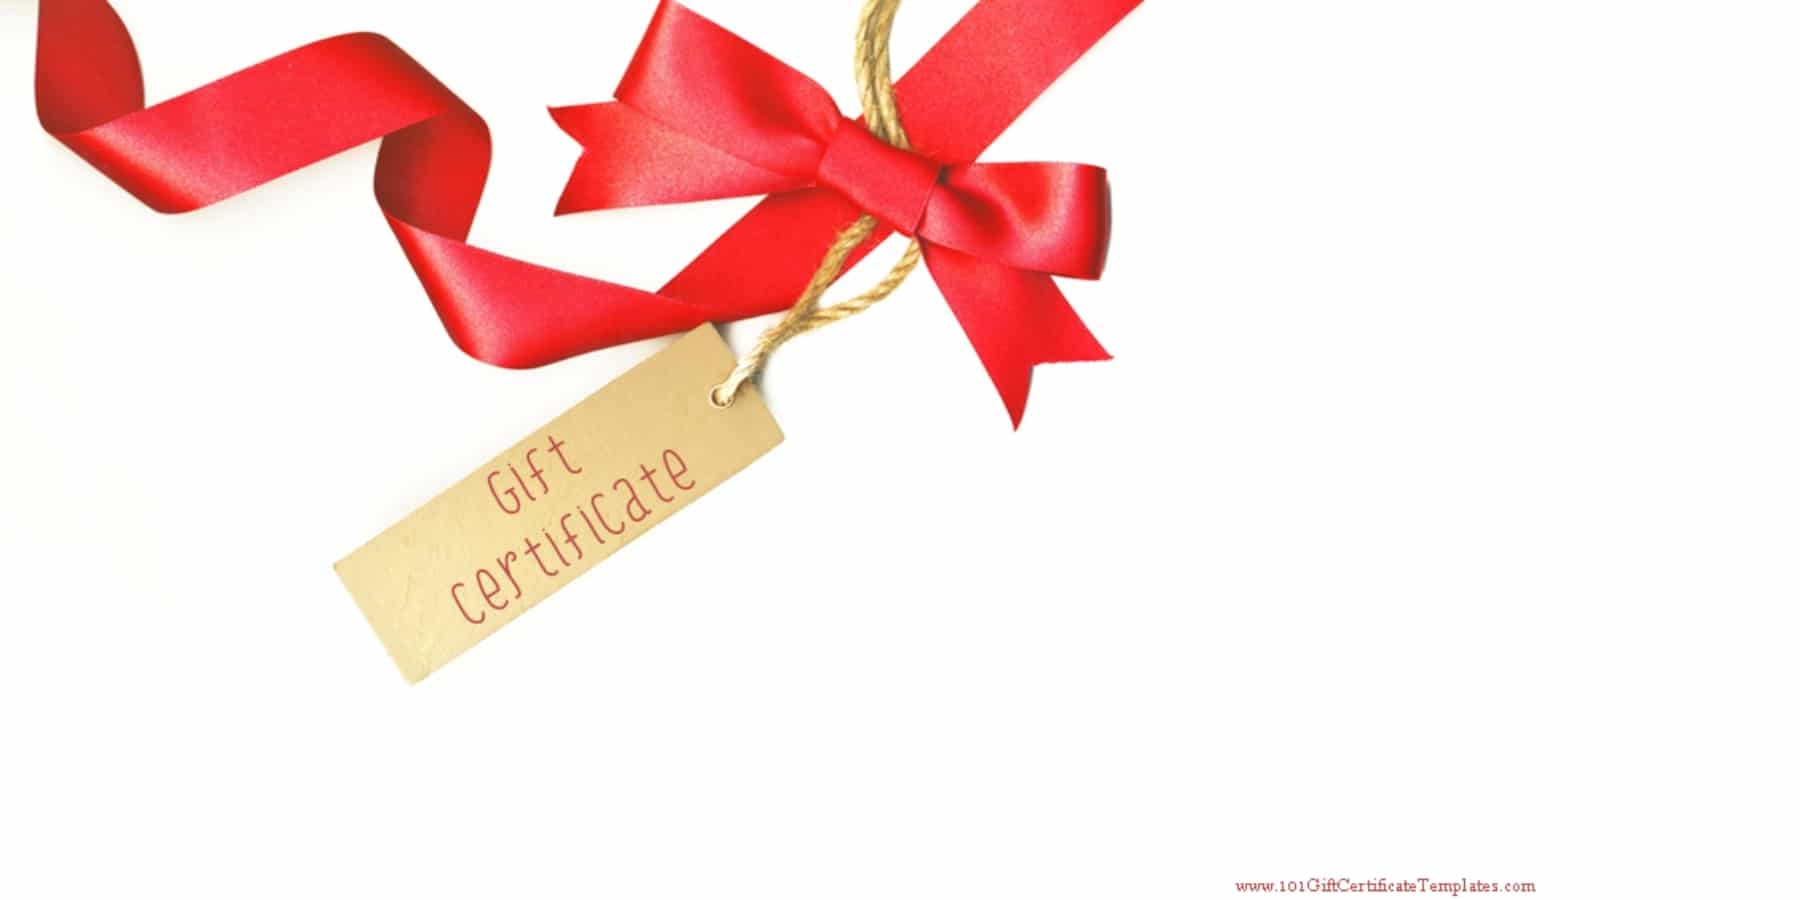 Image result for gift voucher free images